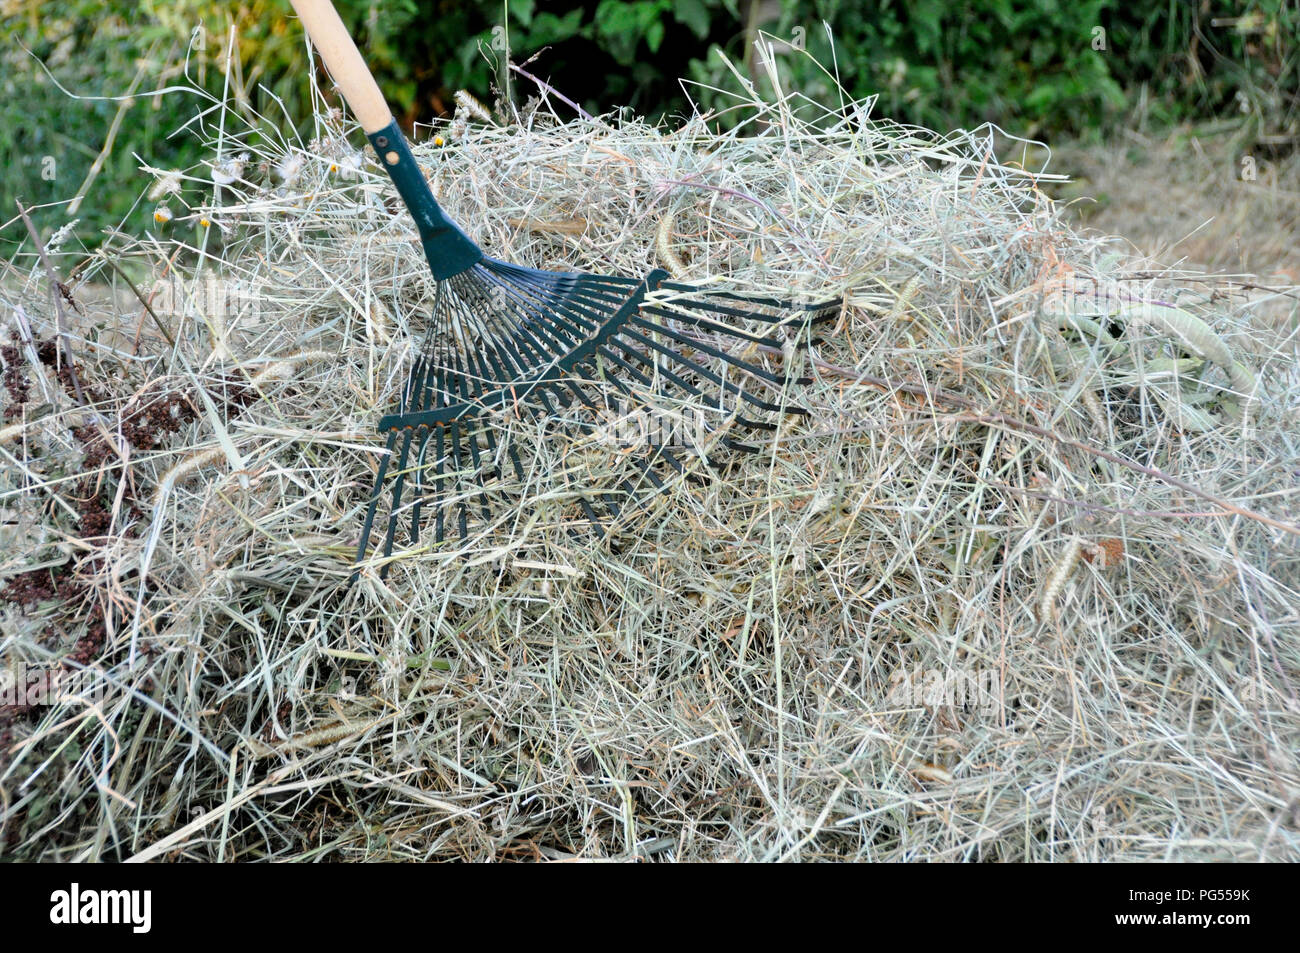 Backyard Cleaning cleaning of dry grassrakes on the backyard stock photo